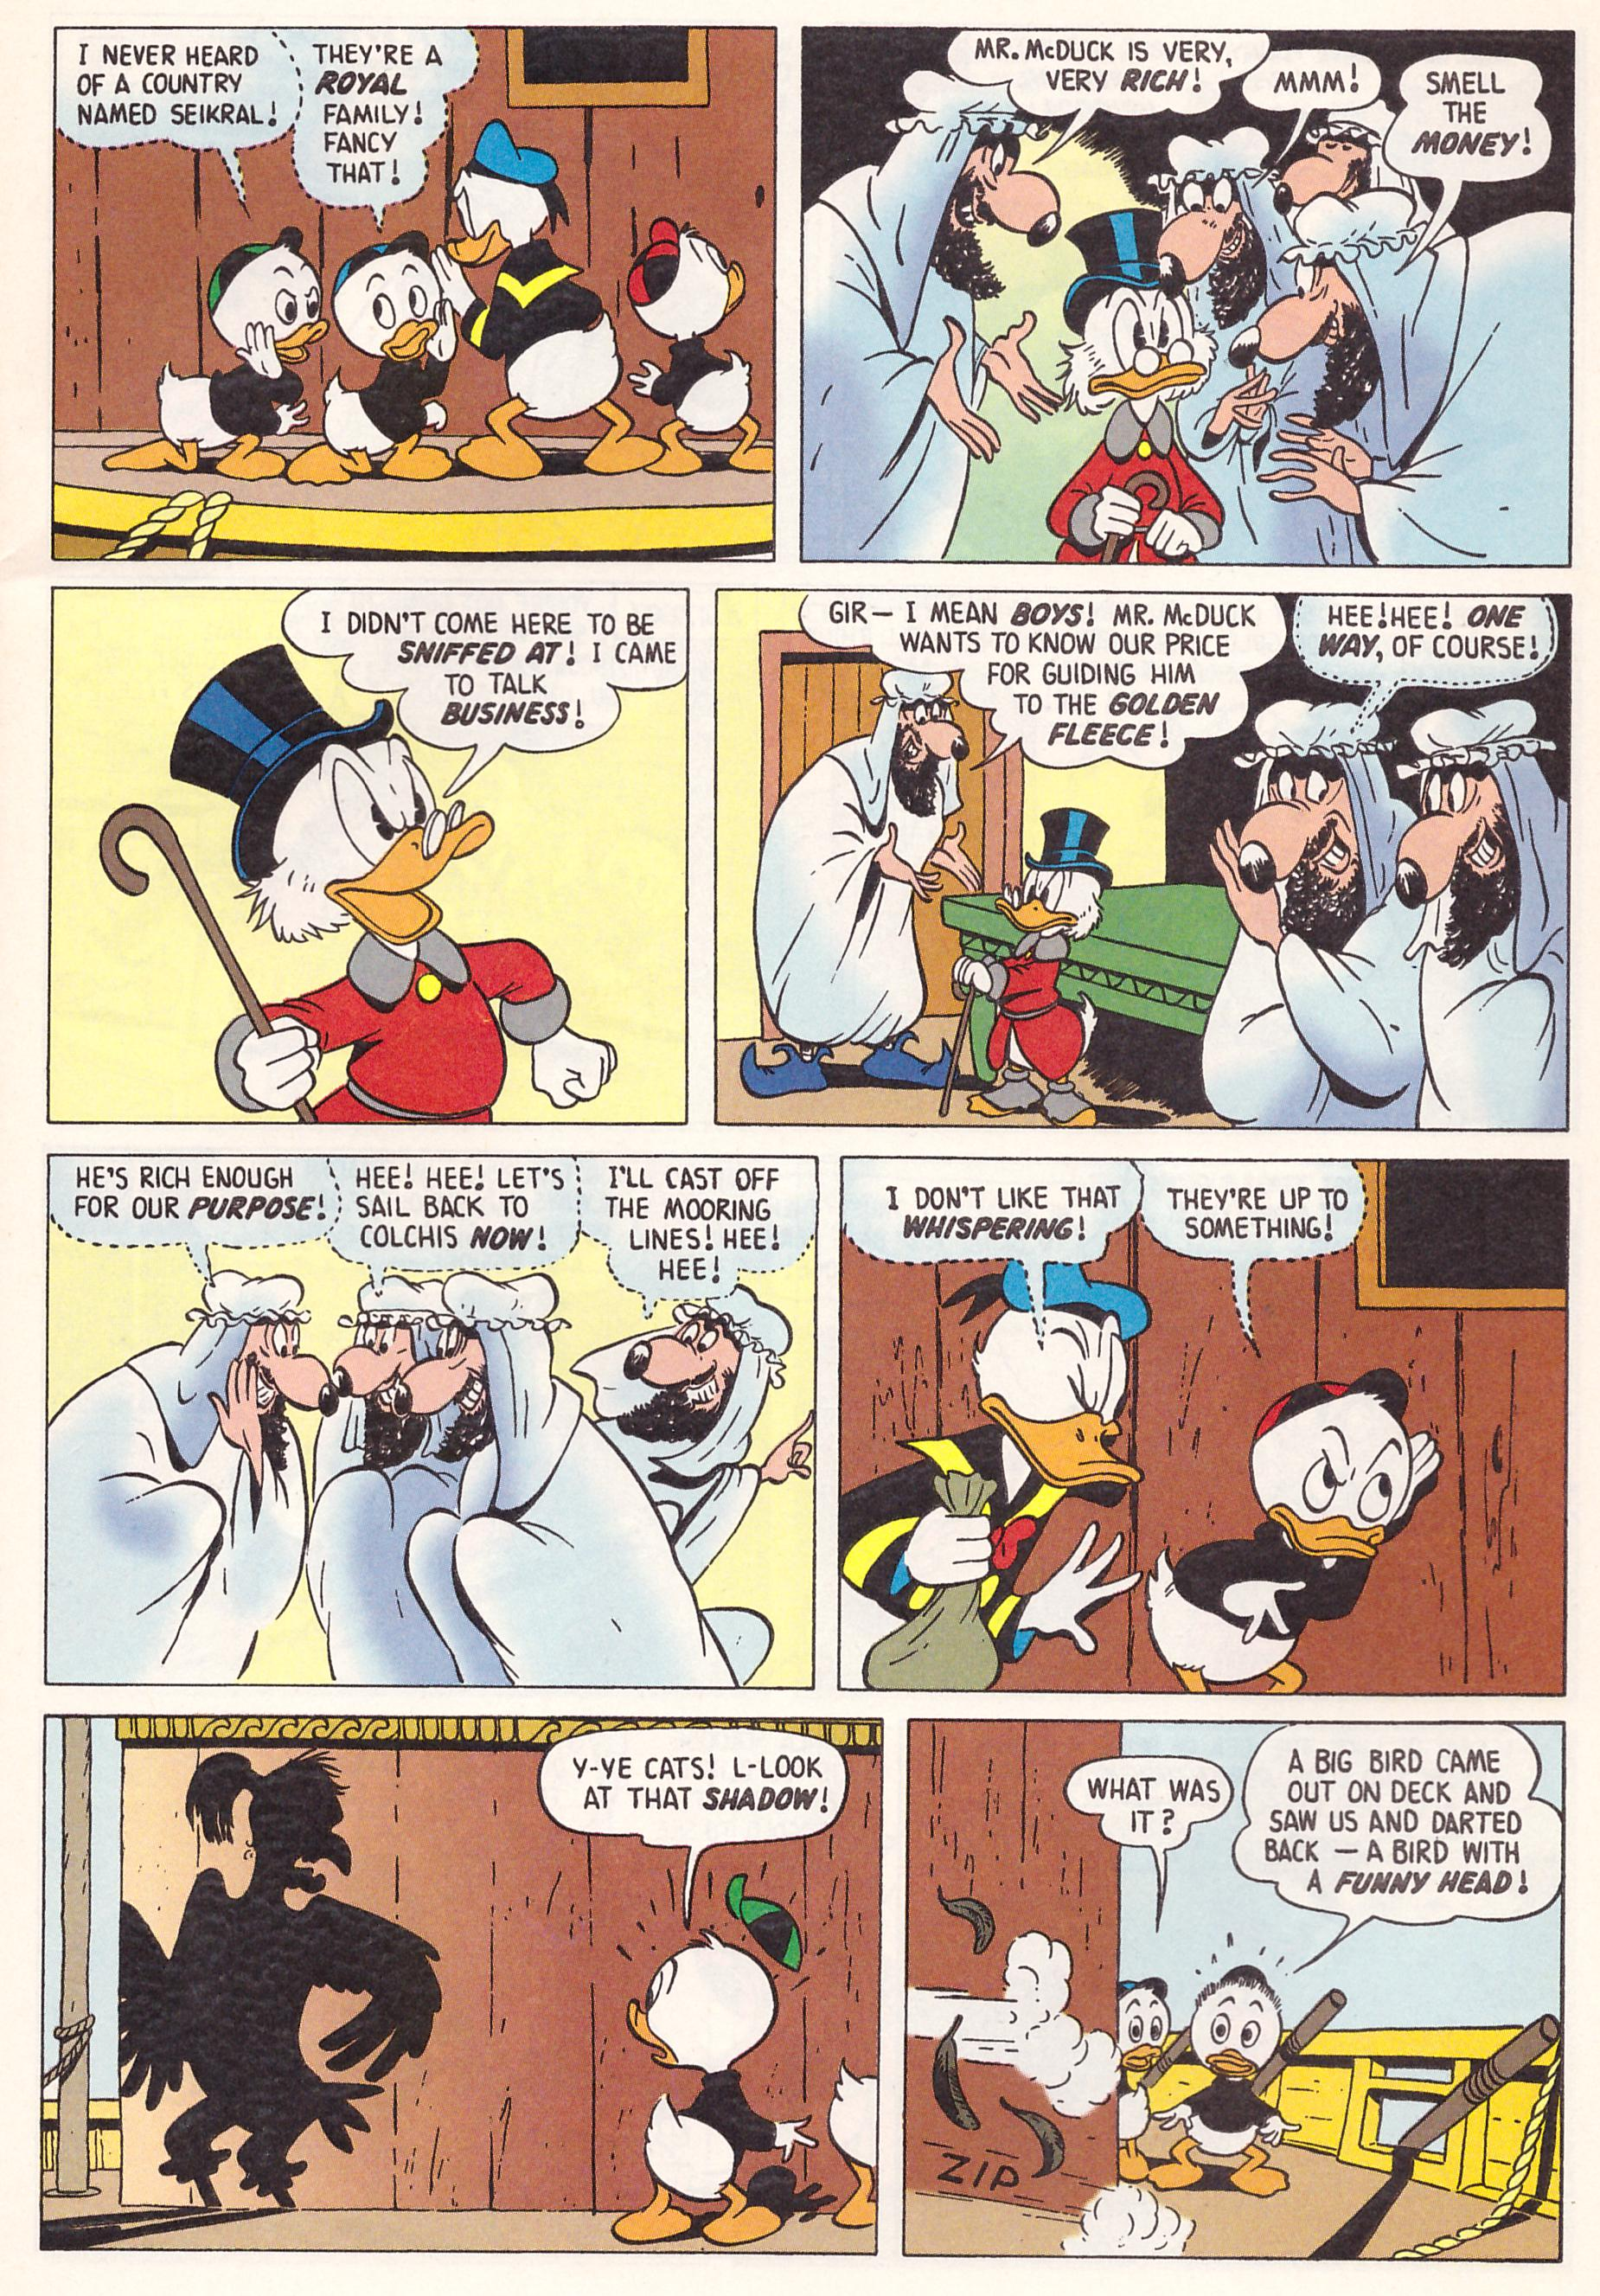 Uncle Scrooge Adventure in Color by Carl Barks 12 review